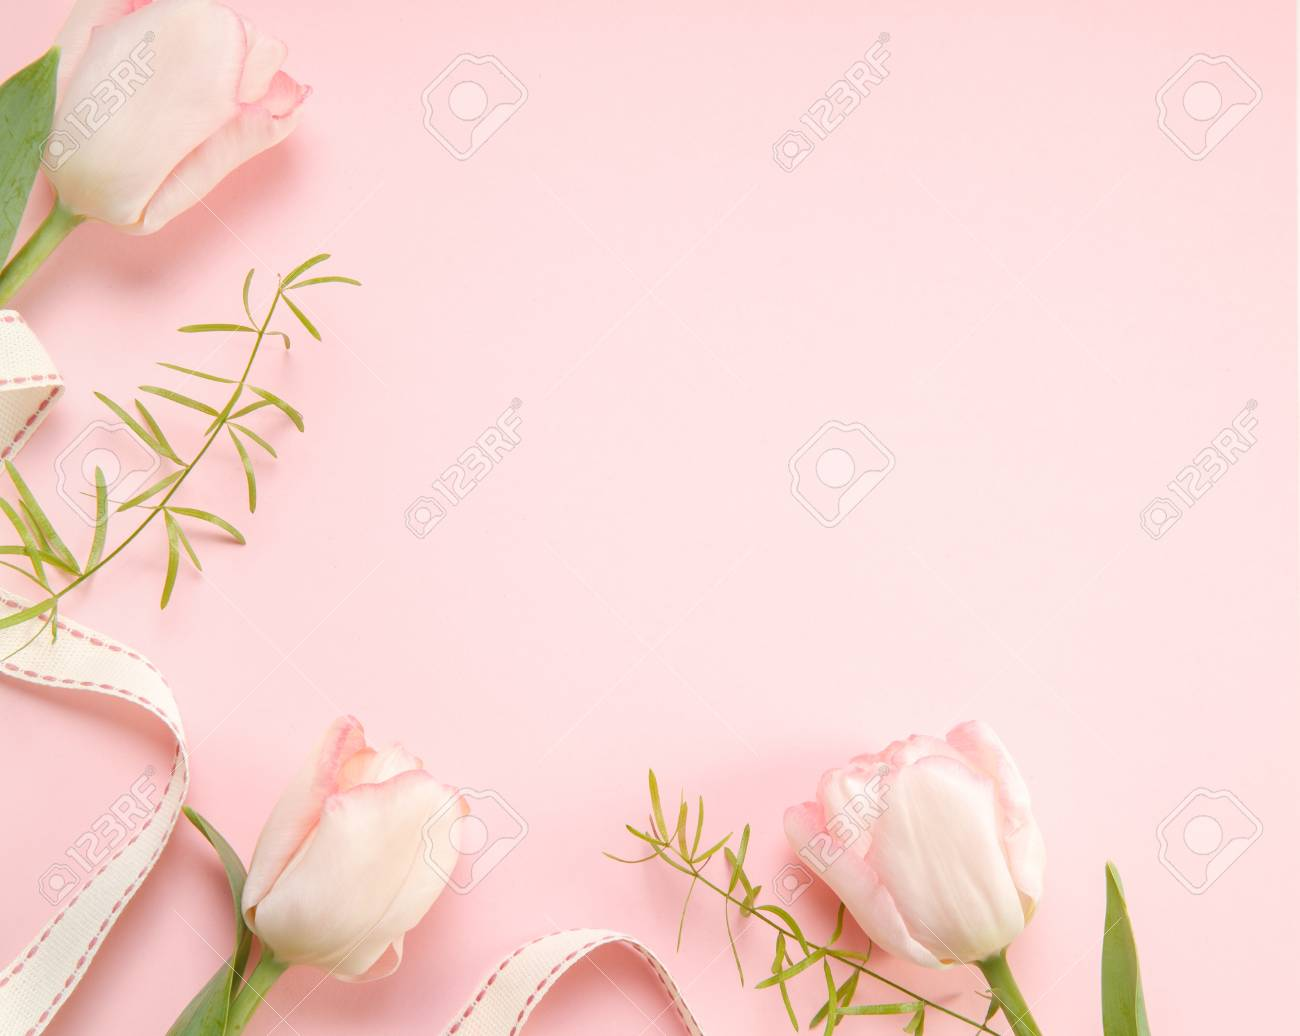 Festive Flower Pink Tulips Composition On The Light Pink Background